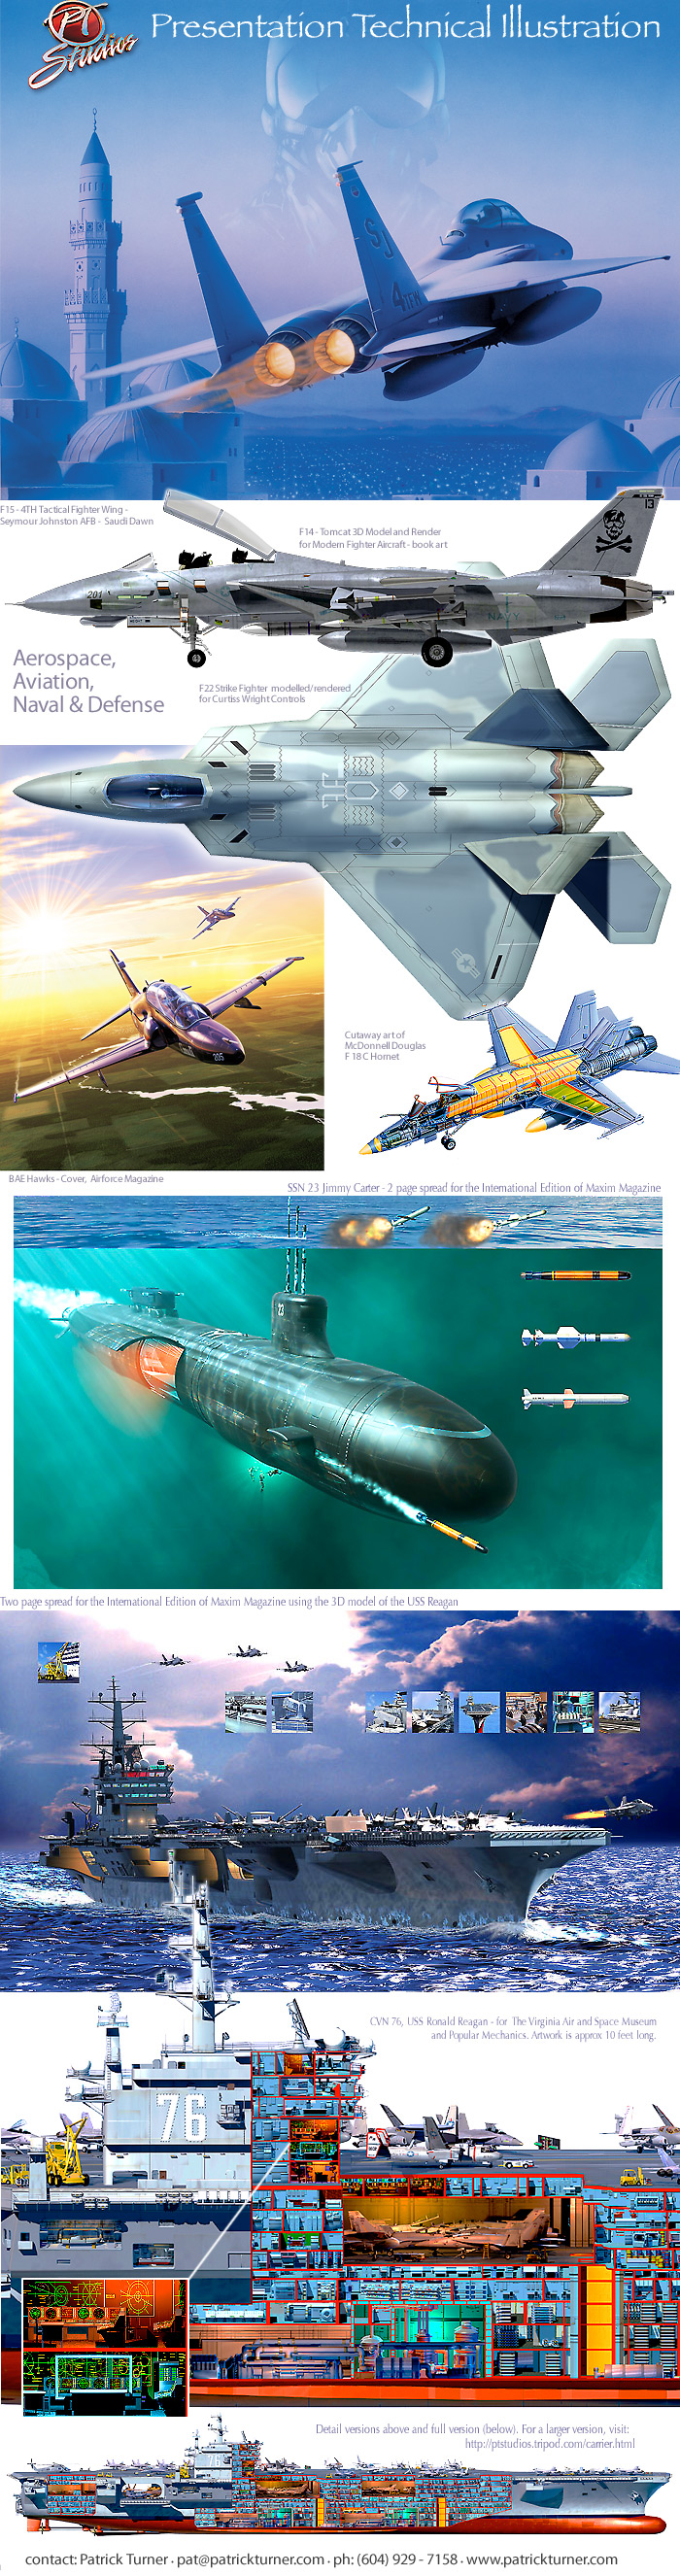 Sample sheet of aviation and aerospace artwork